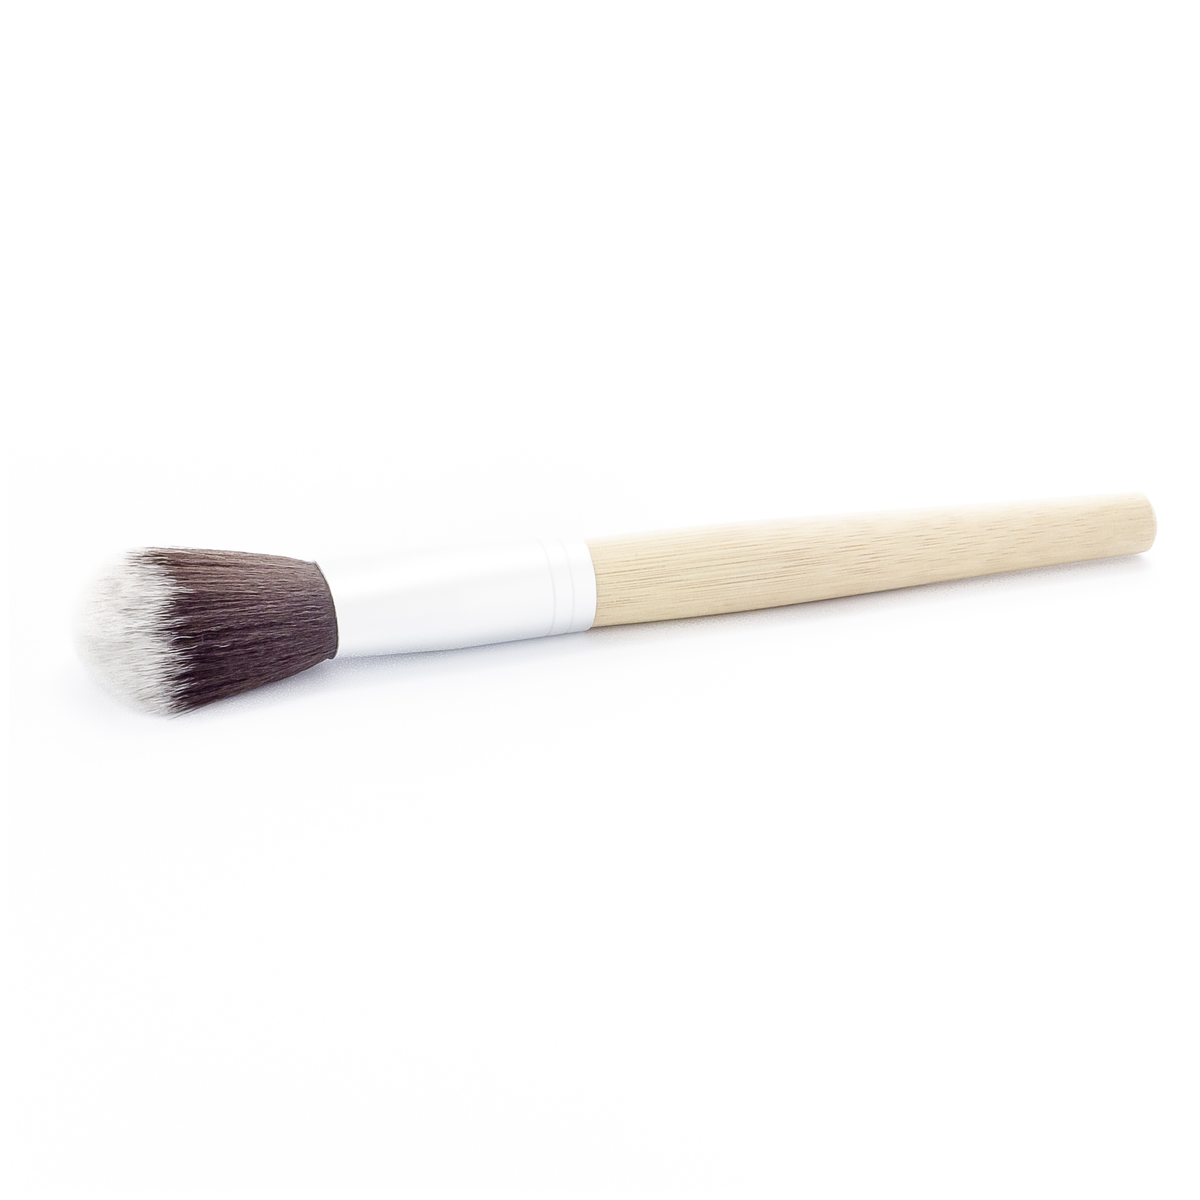 Puderpinsel - Powder brush 22.5 cm 1 Stück - benecos